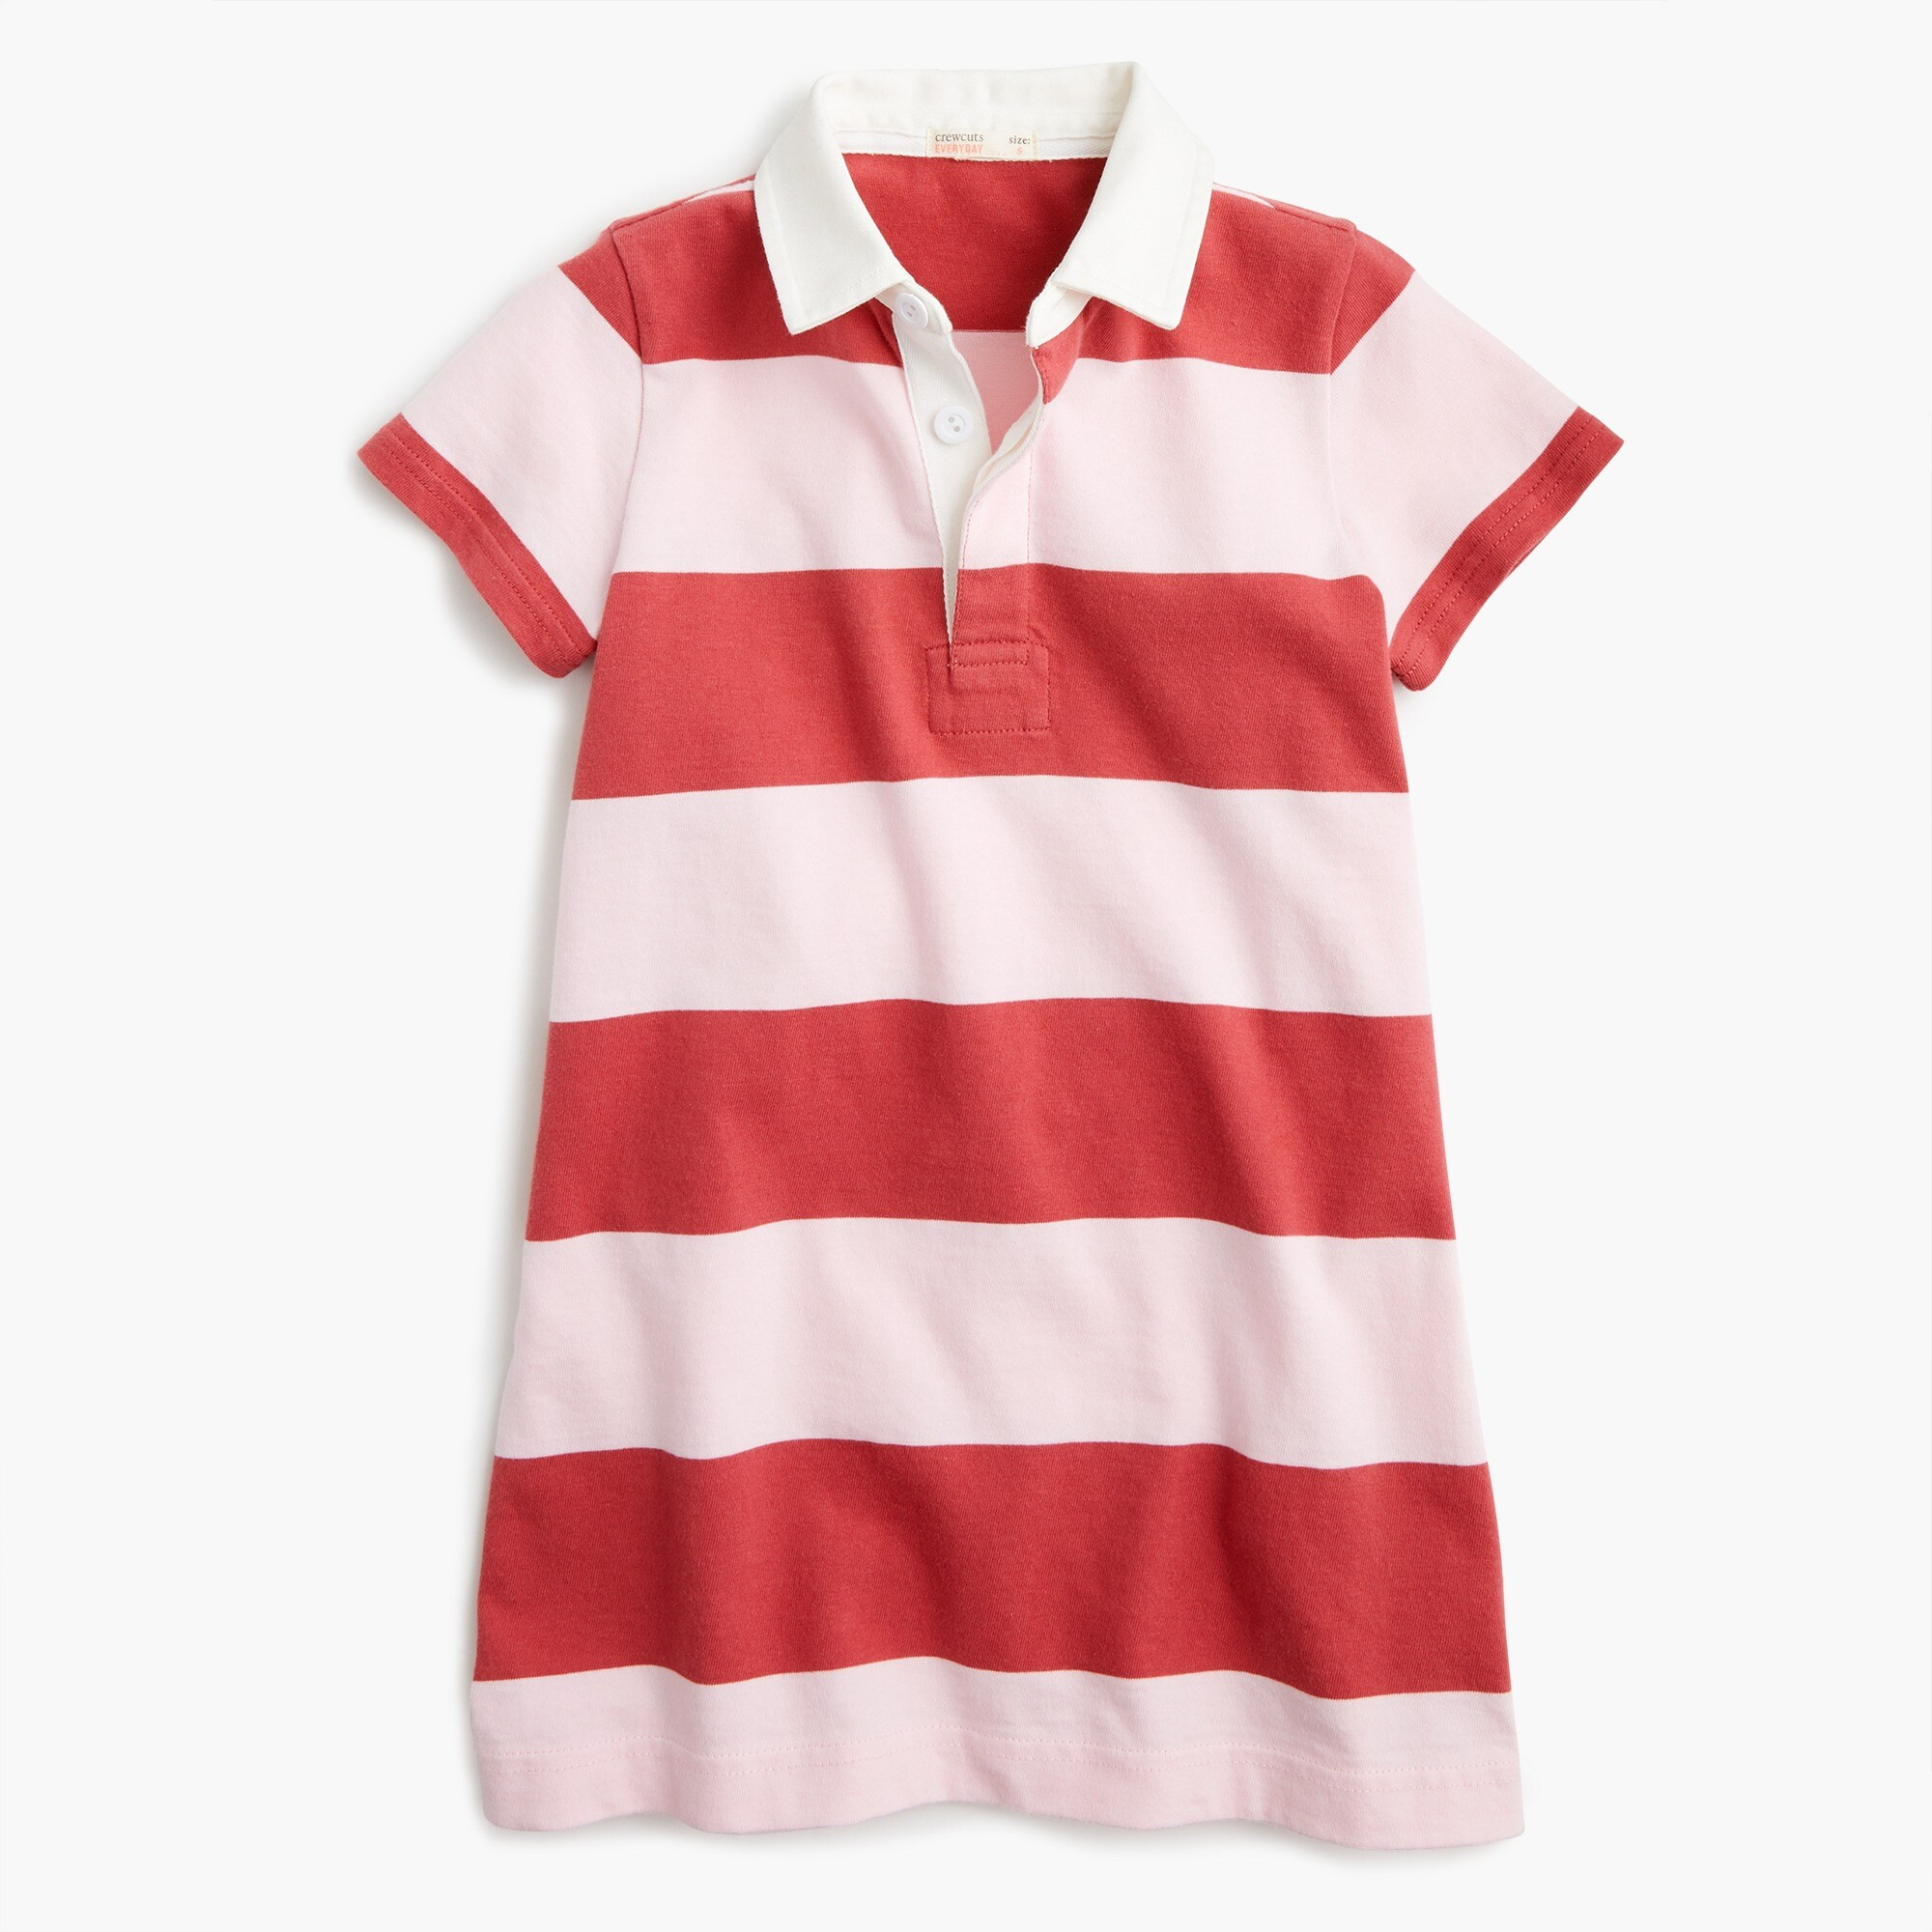 girls Girls' short-sleeved rugby shirtdress